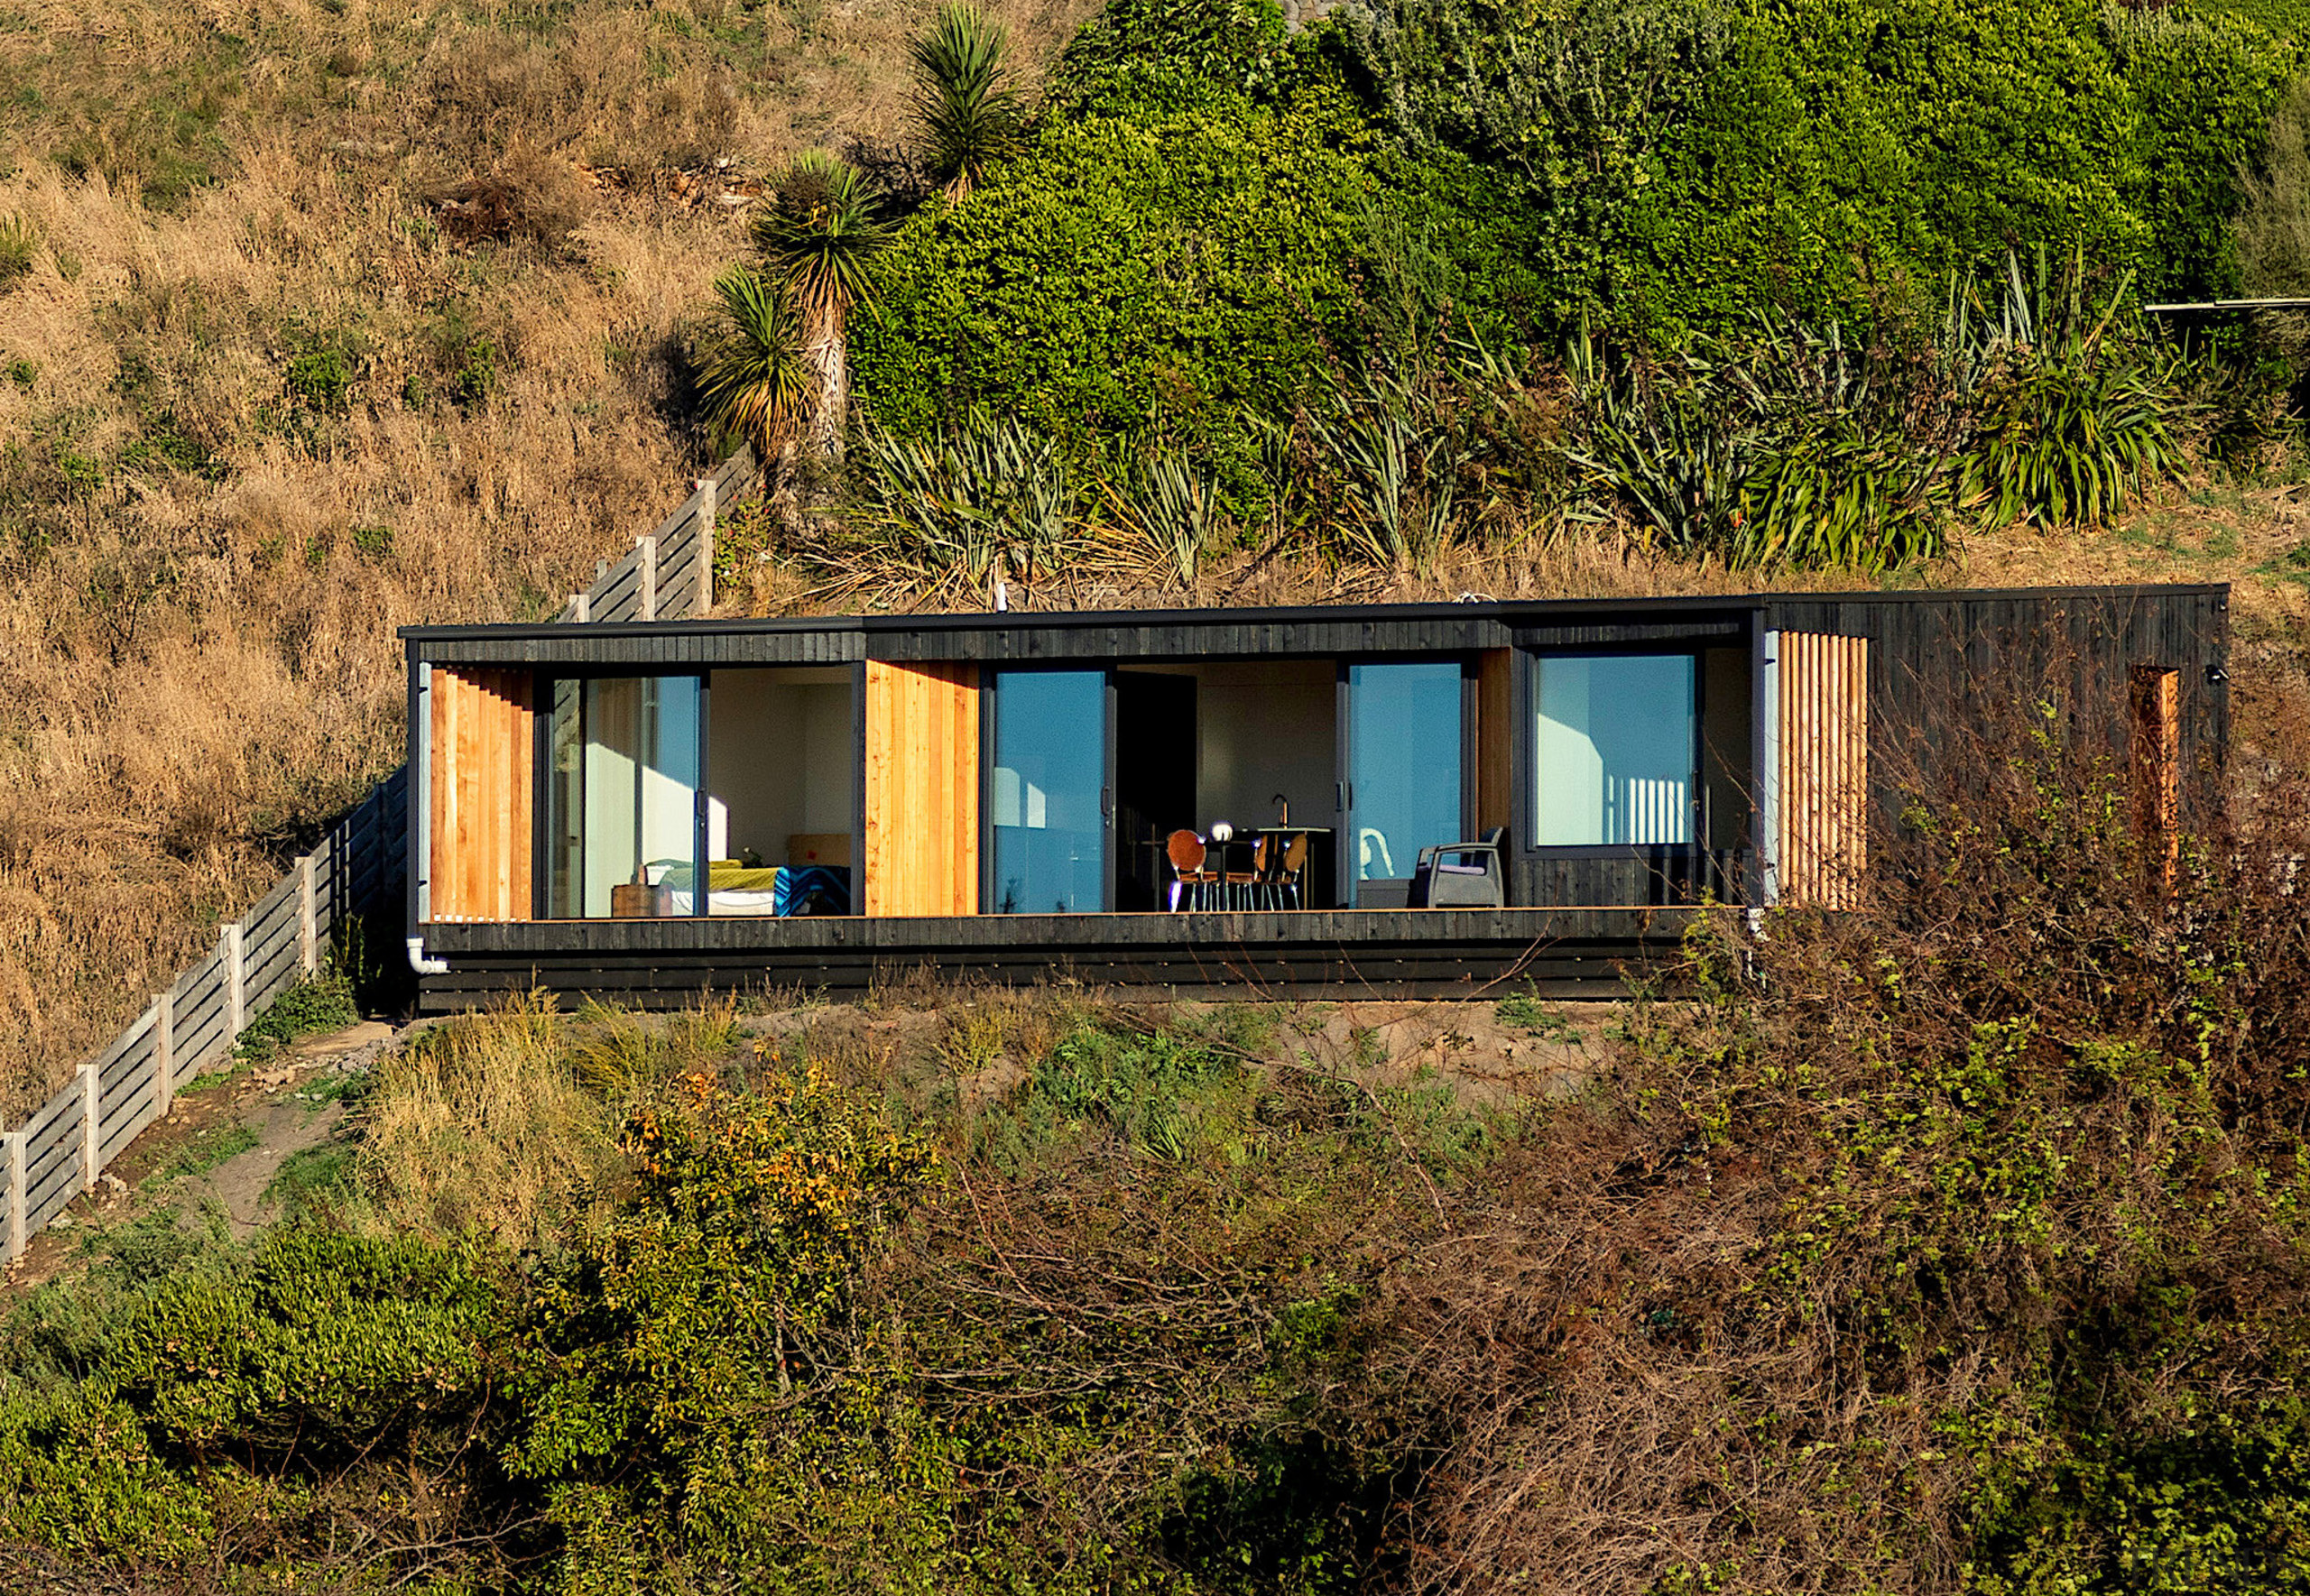 Outdoor living and unobstructed views were key aspects